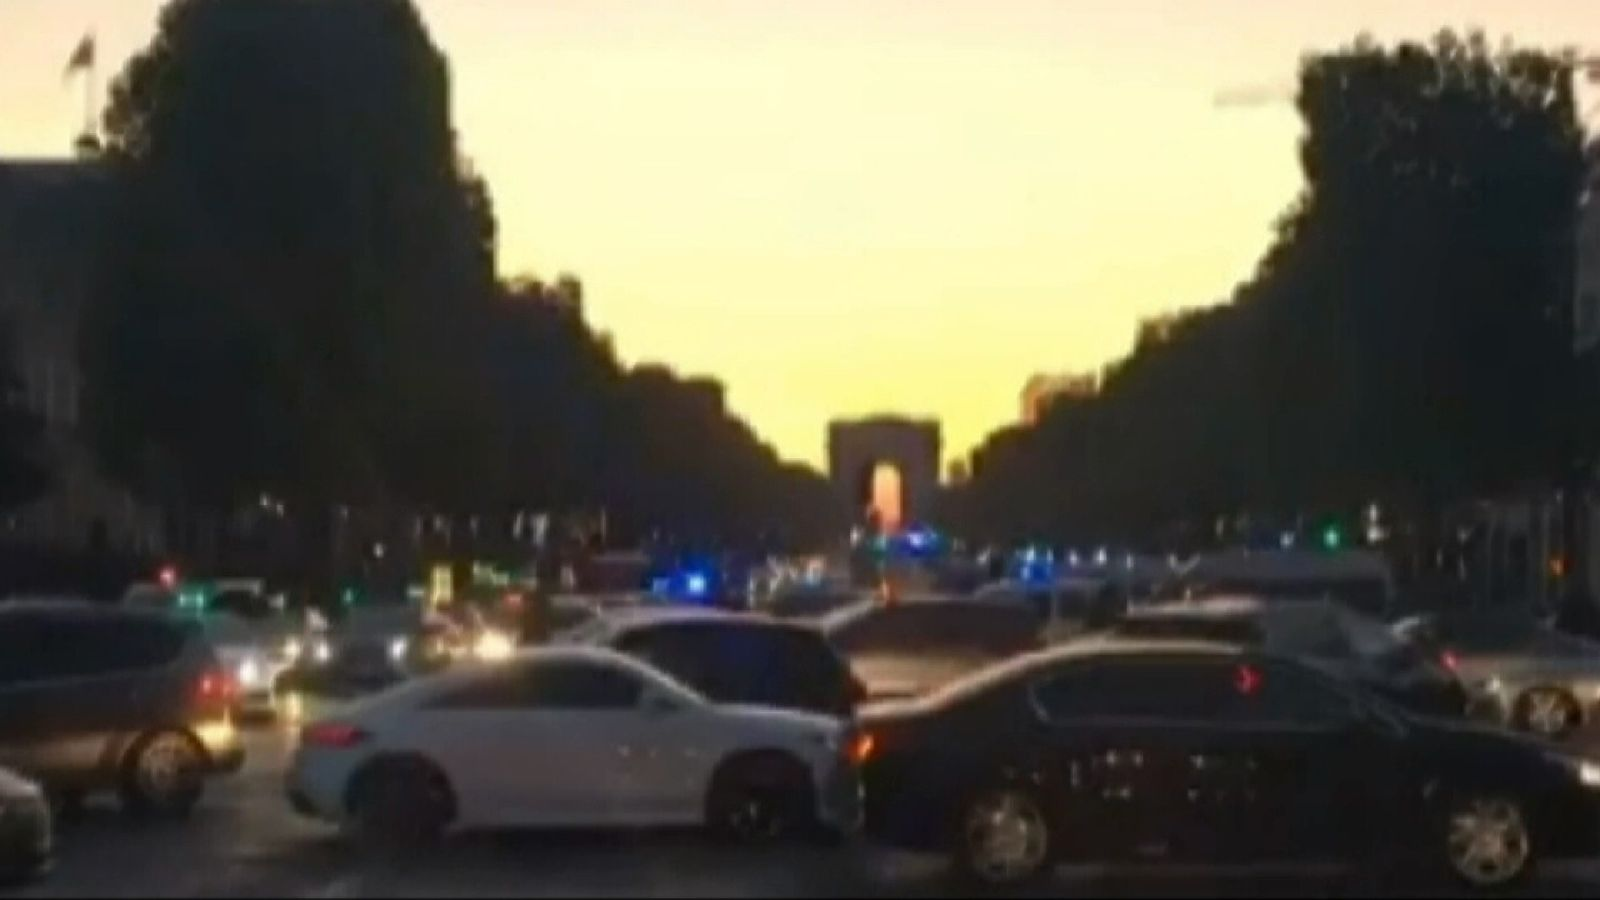 Police shot at dusk in Paris street